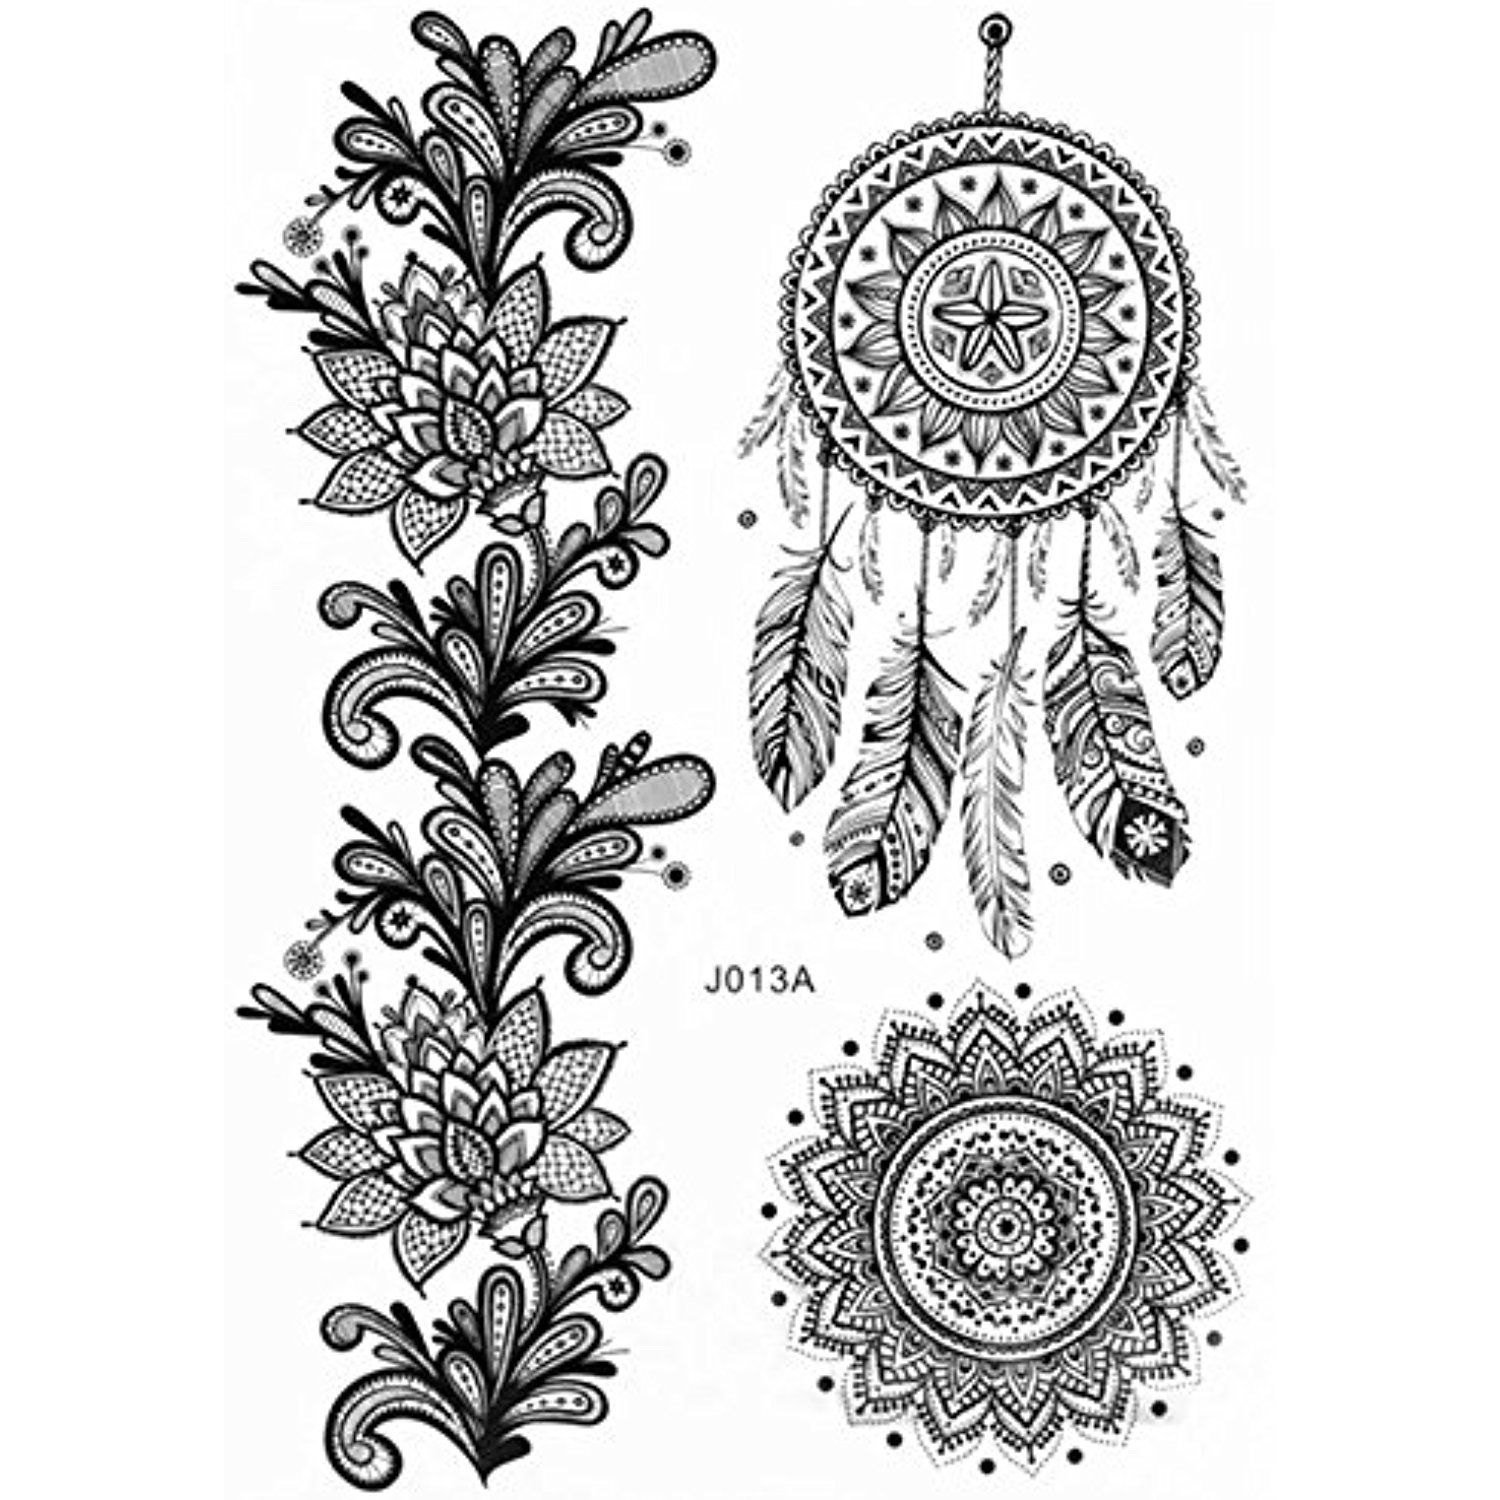 1 Sheet Of Black Floral Removable Lace Body Art Tattoo